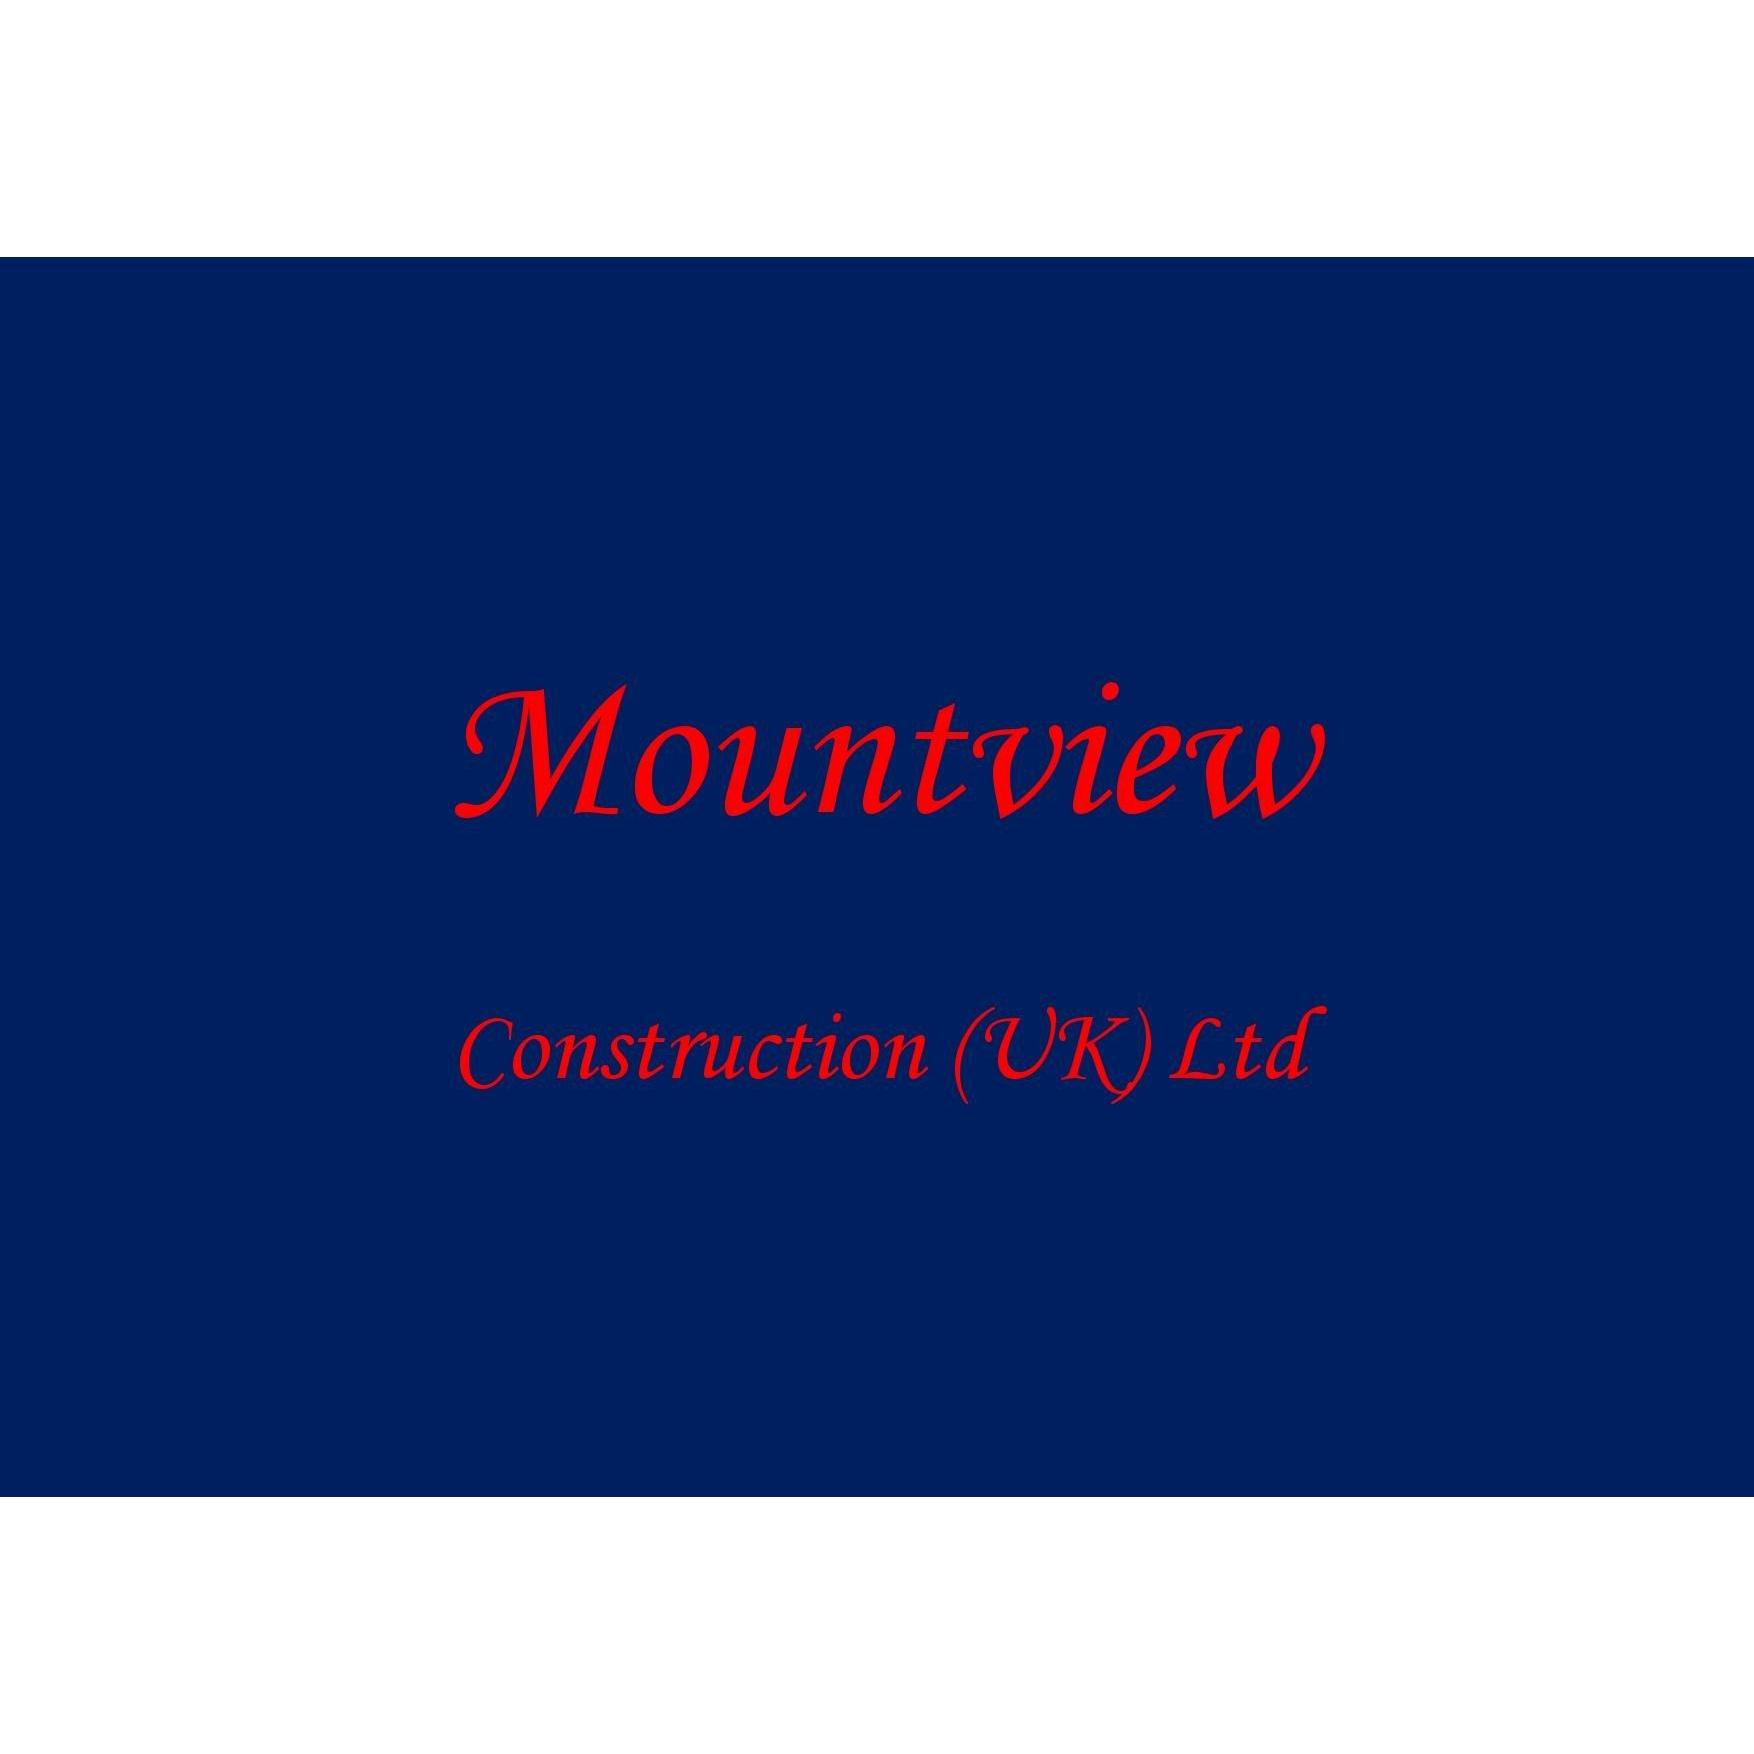 Mountview Construction